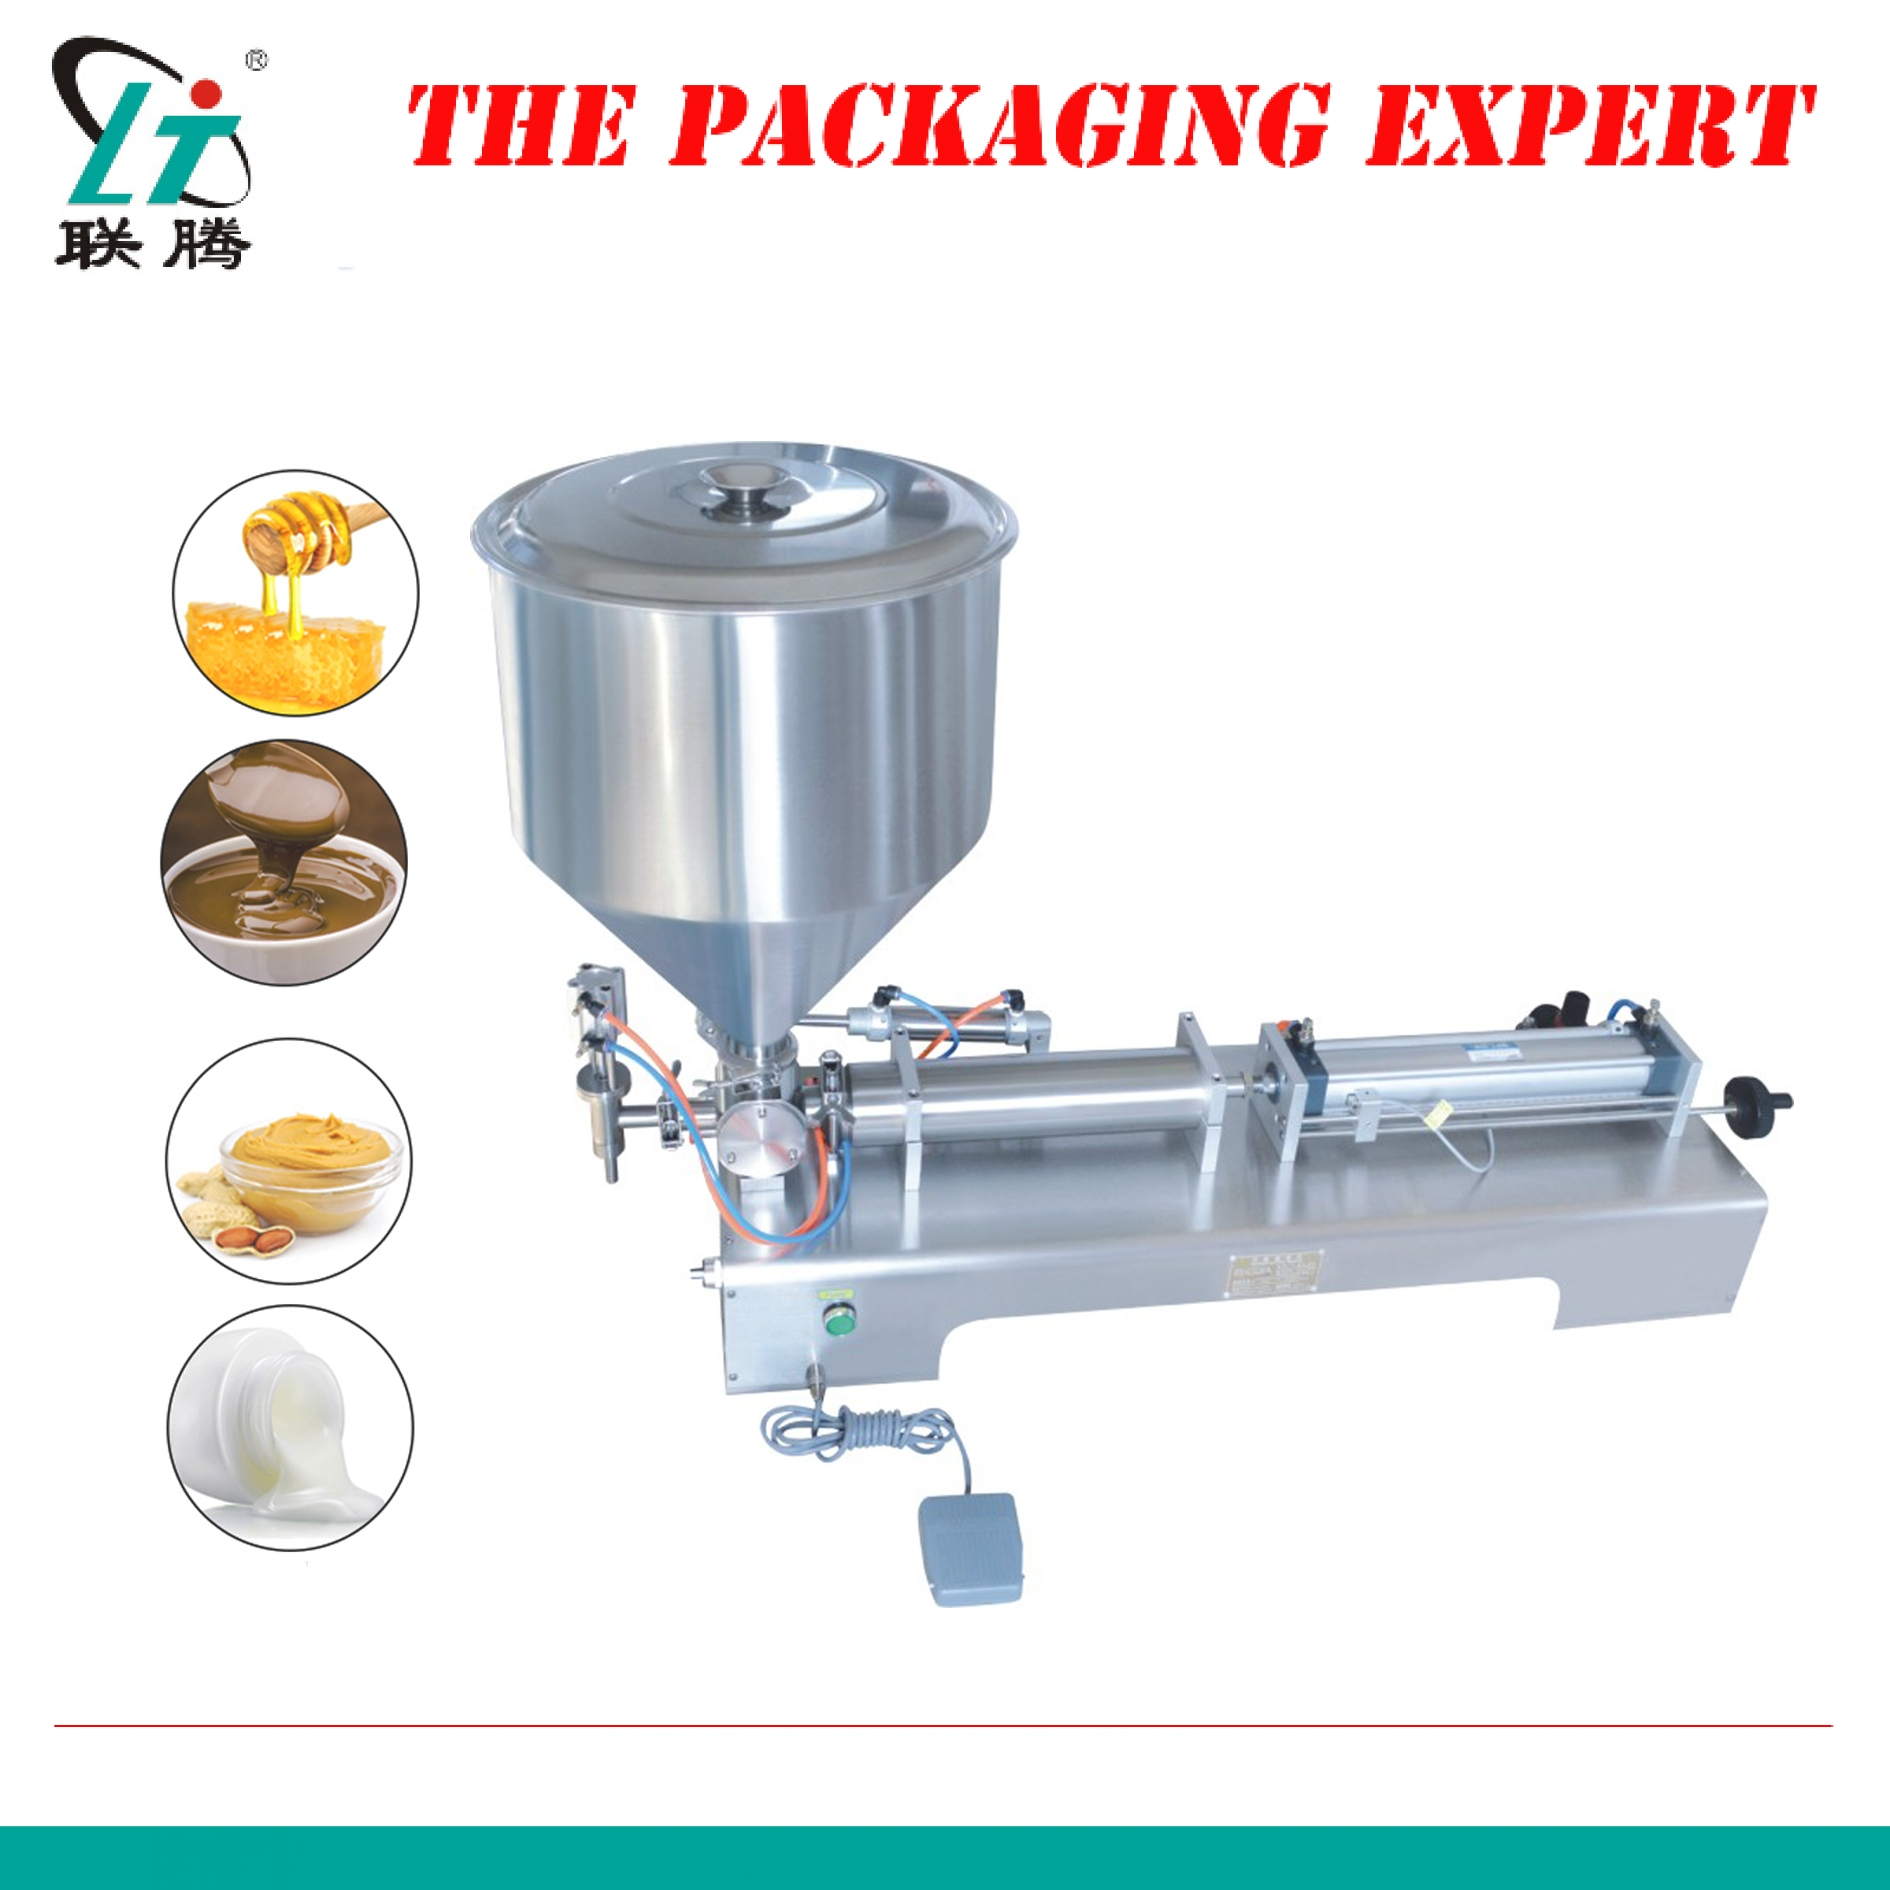 500ml Filler Shampoo Lotion Cream Yoghourt Honey Juice Sauce Jam Gel Filler Paste Filling Machine Pneumatic Piston Filler